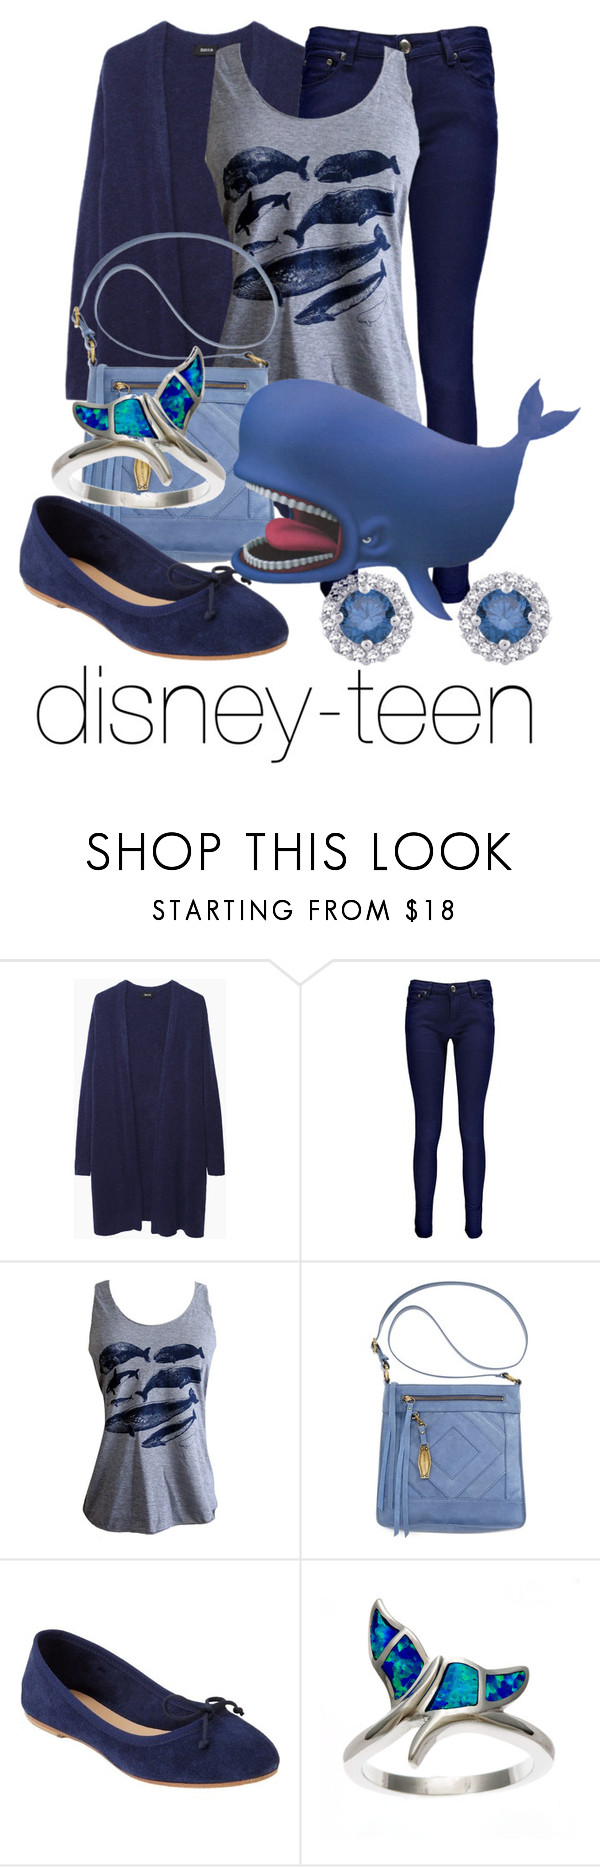 """Monstro"" by disney-teen ❤ liked on Polyvore featuring Zucca, Boohoo, American Apparel, Baldwin, Barneys New York and La Preciosa"